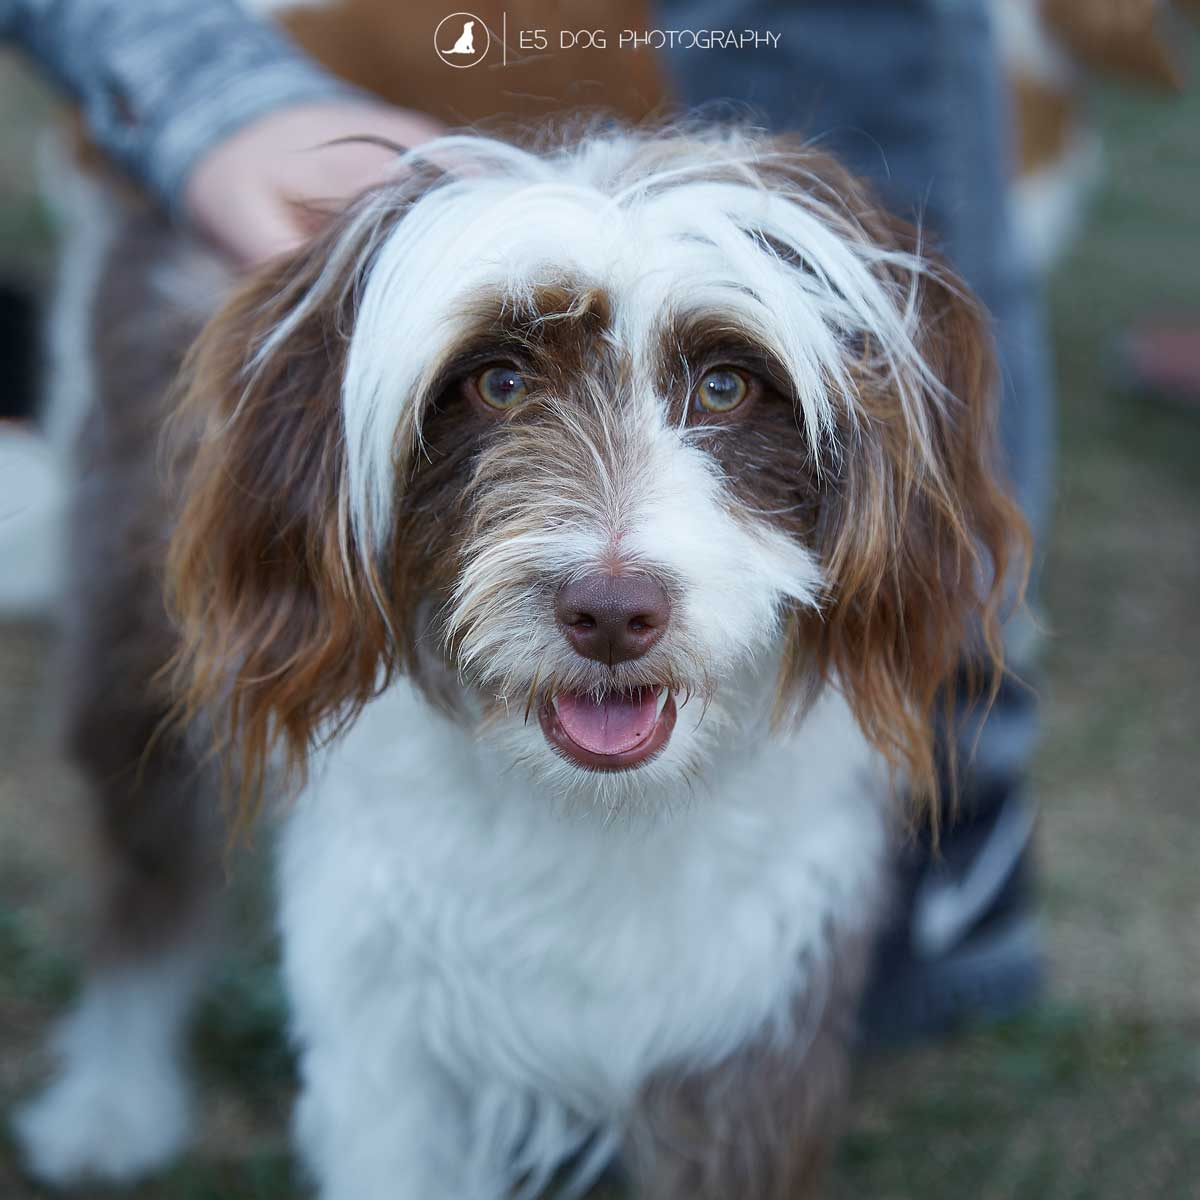 E5_Dog_Photography_PupAid_Primrose_Hill_2016_040